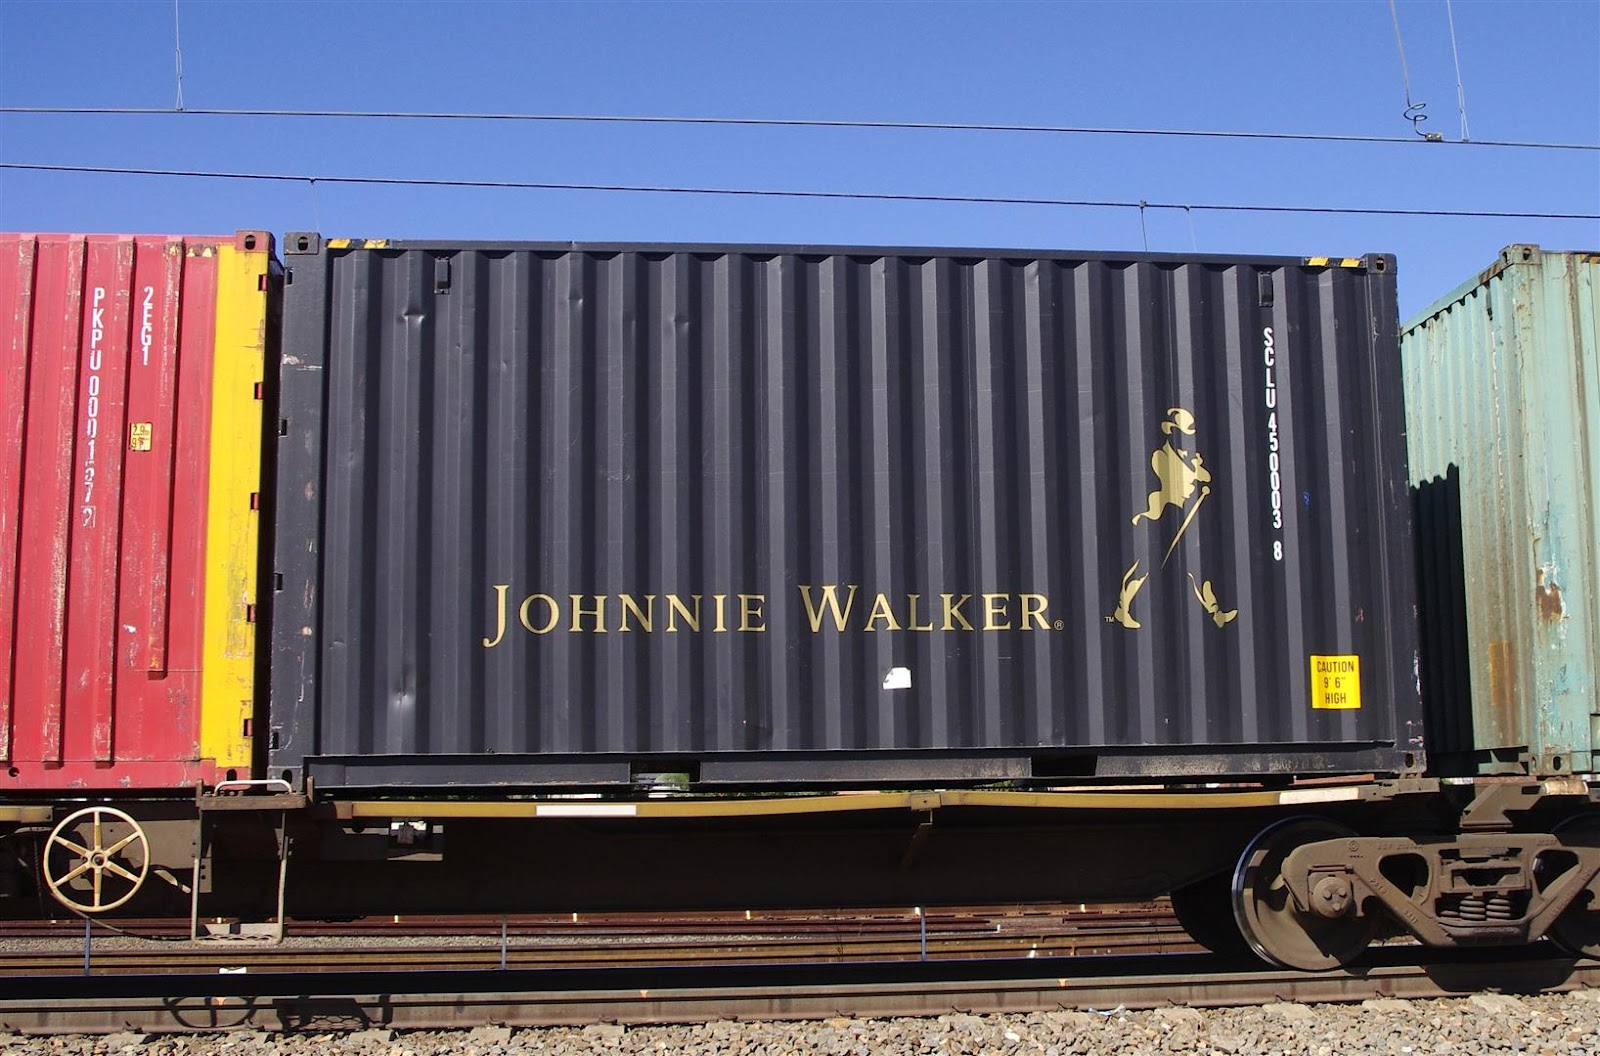 Tapware Brisbane Rollingstock News Johnnie Walker By Rail